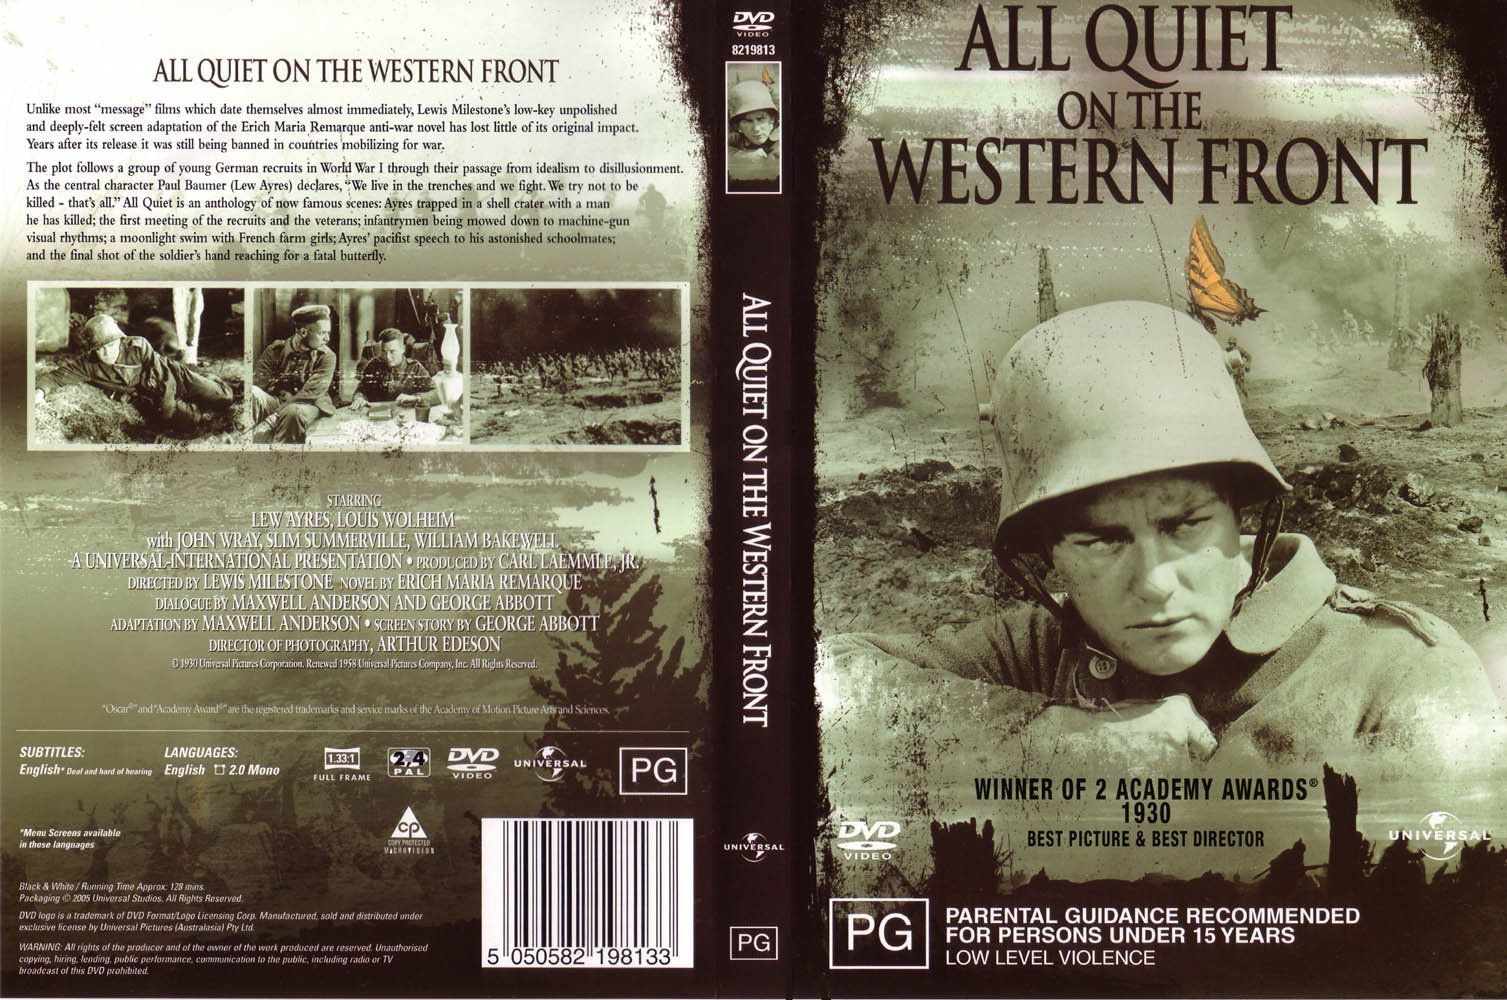 an analysis of human behavior in all quiet on the western front and lord of the flies The last remaining website for students offering 1000's of free term papers, essays, book reports & research papers.